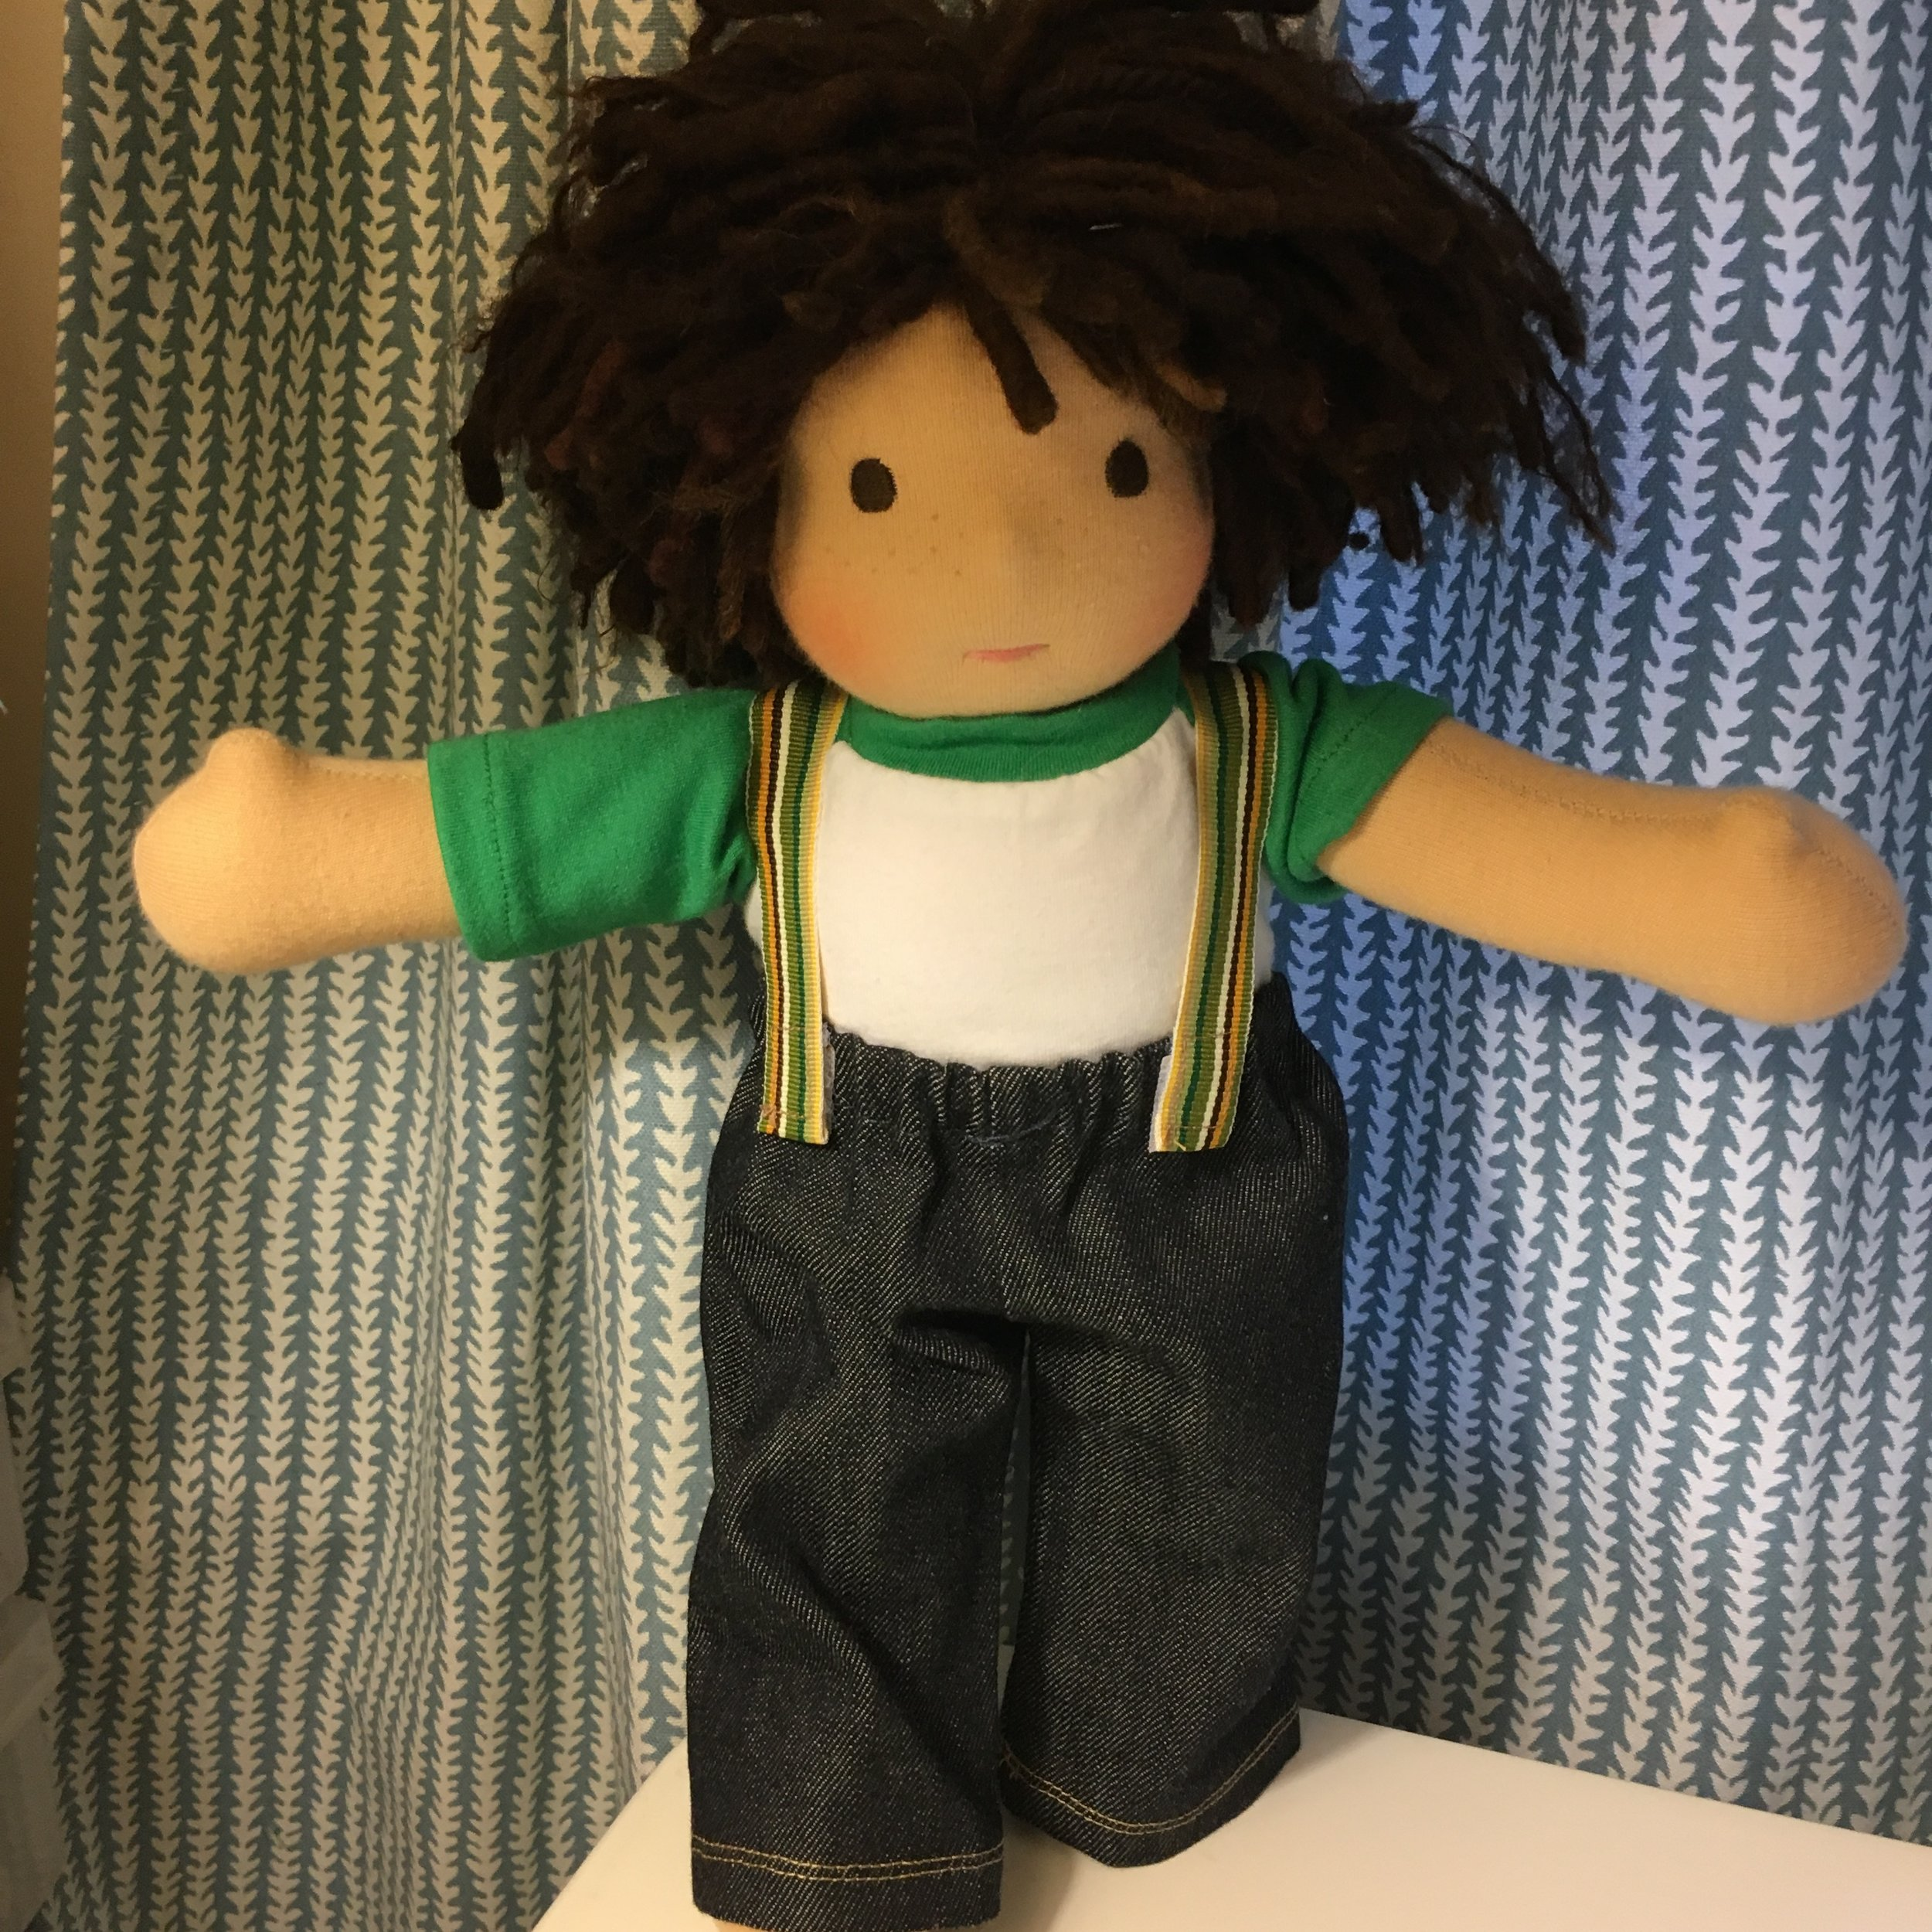 Making Suspenders for a Bamboletta Cuddle Doll  (Click link to go to tutorial). Click here to go to  Bamboletta Dolls.